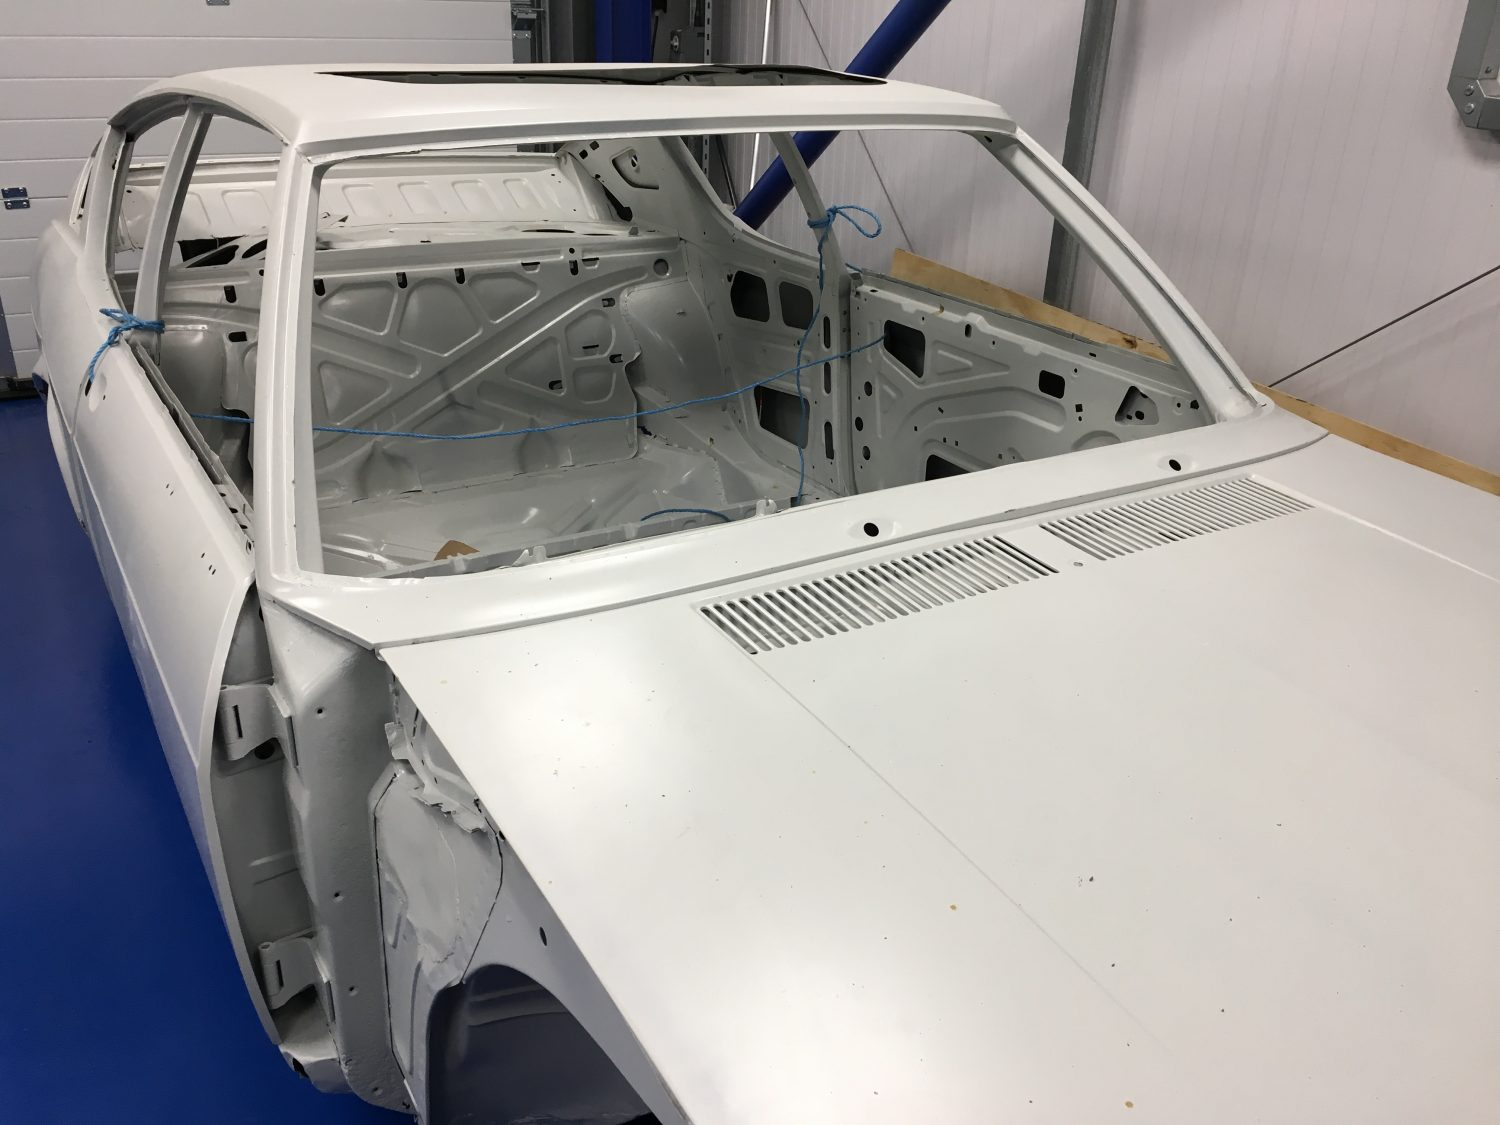 Audi 100 Coupe S arrives back from chemical treatment